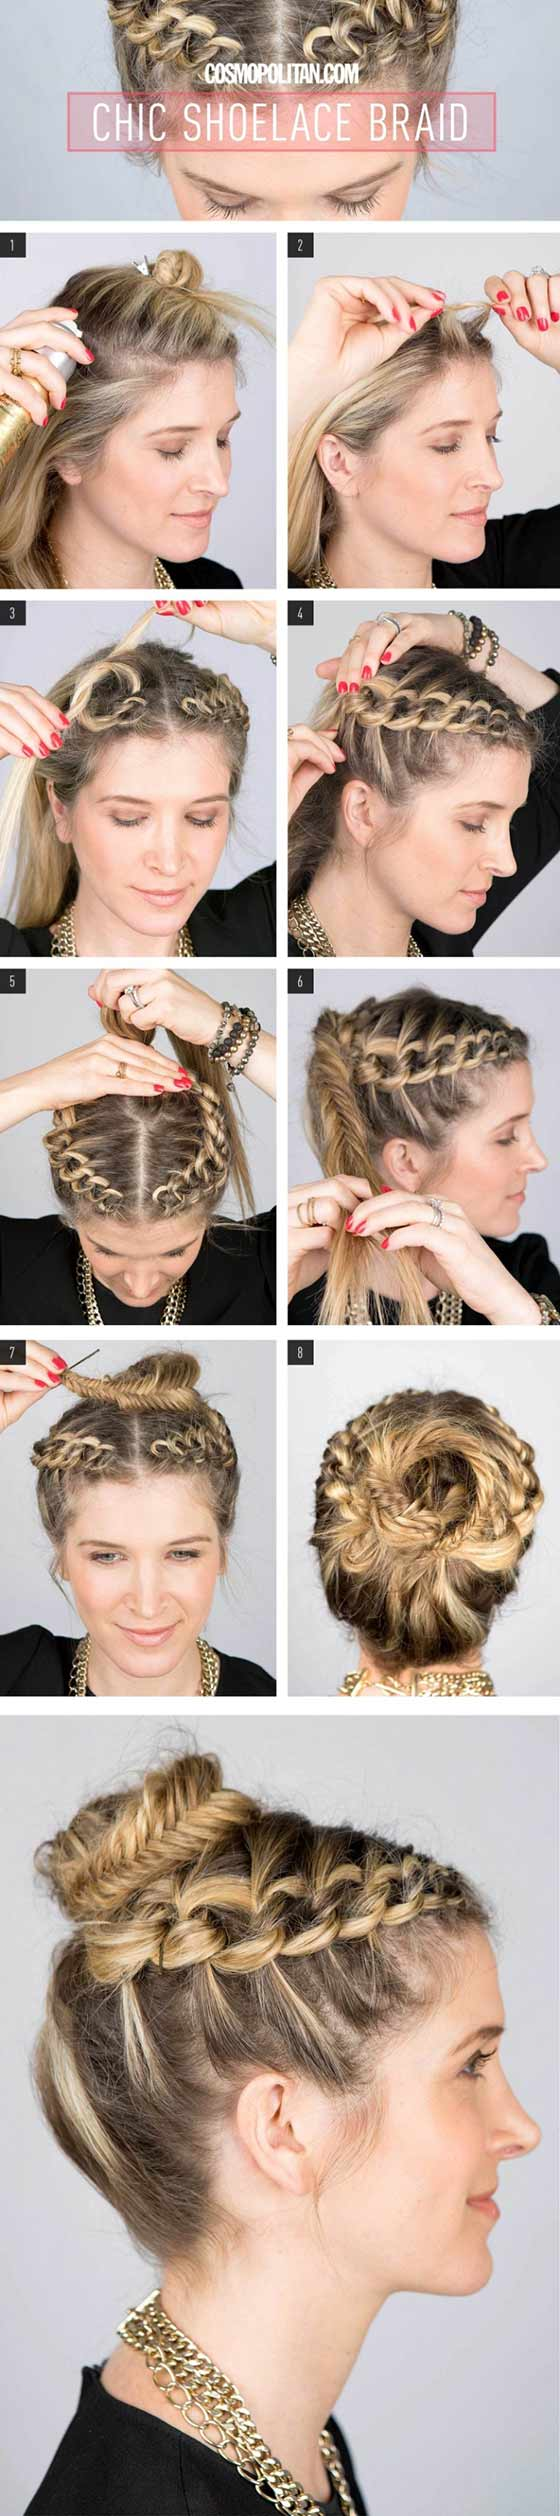 Chic-Shoelace-Braid